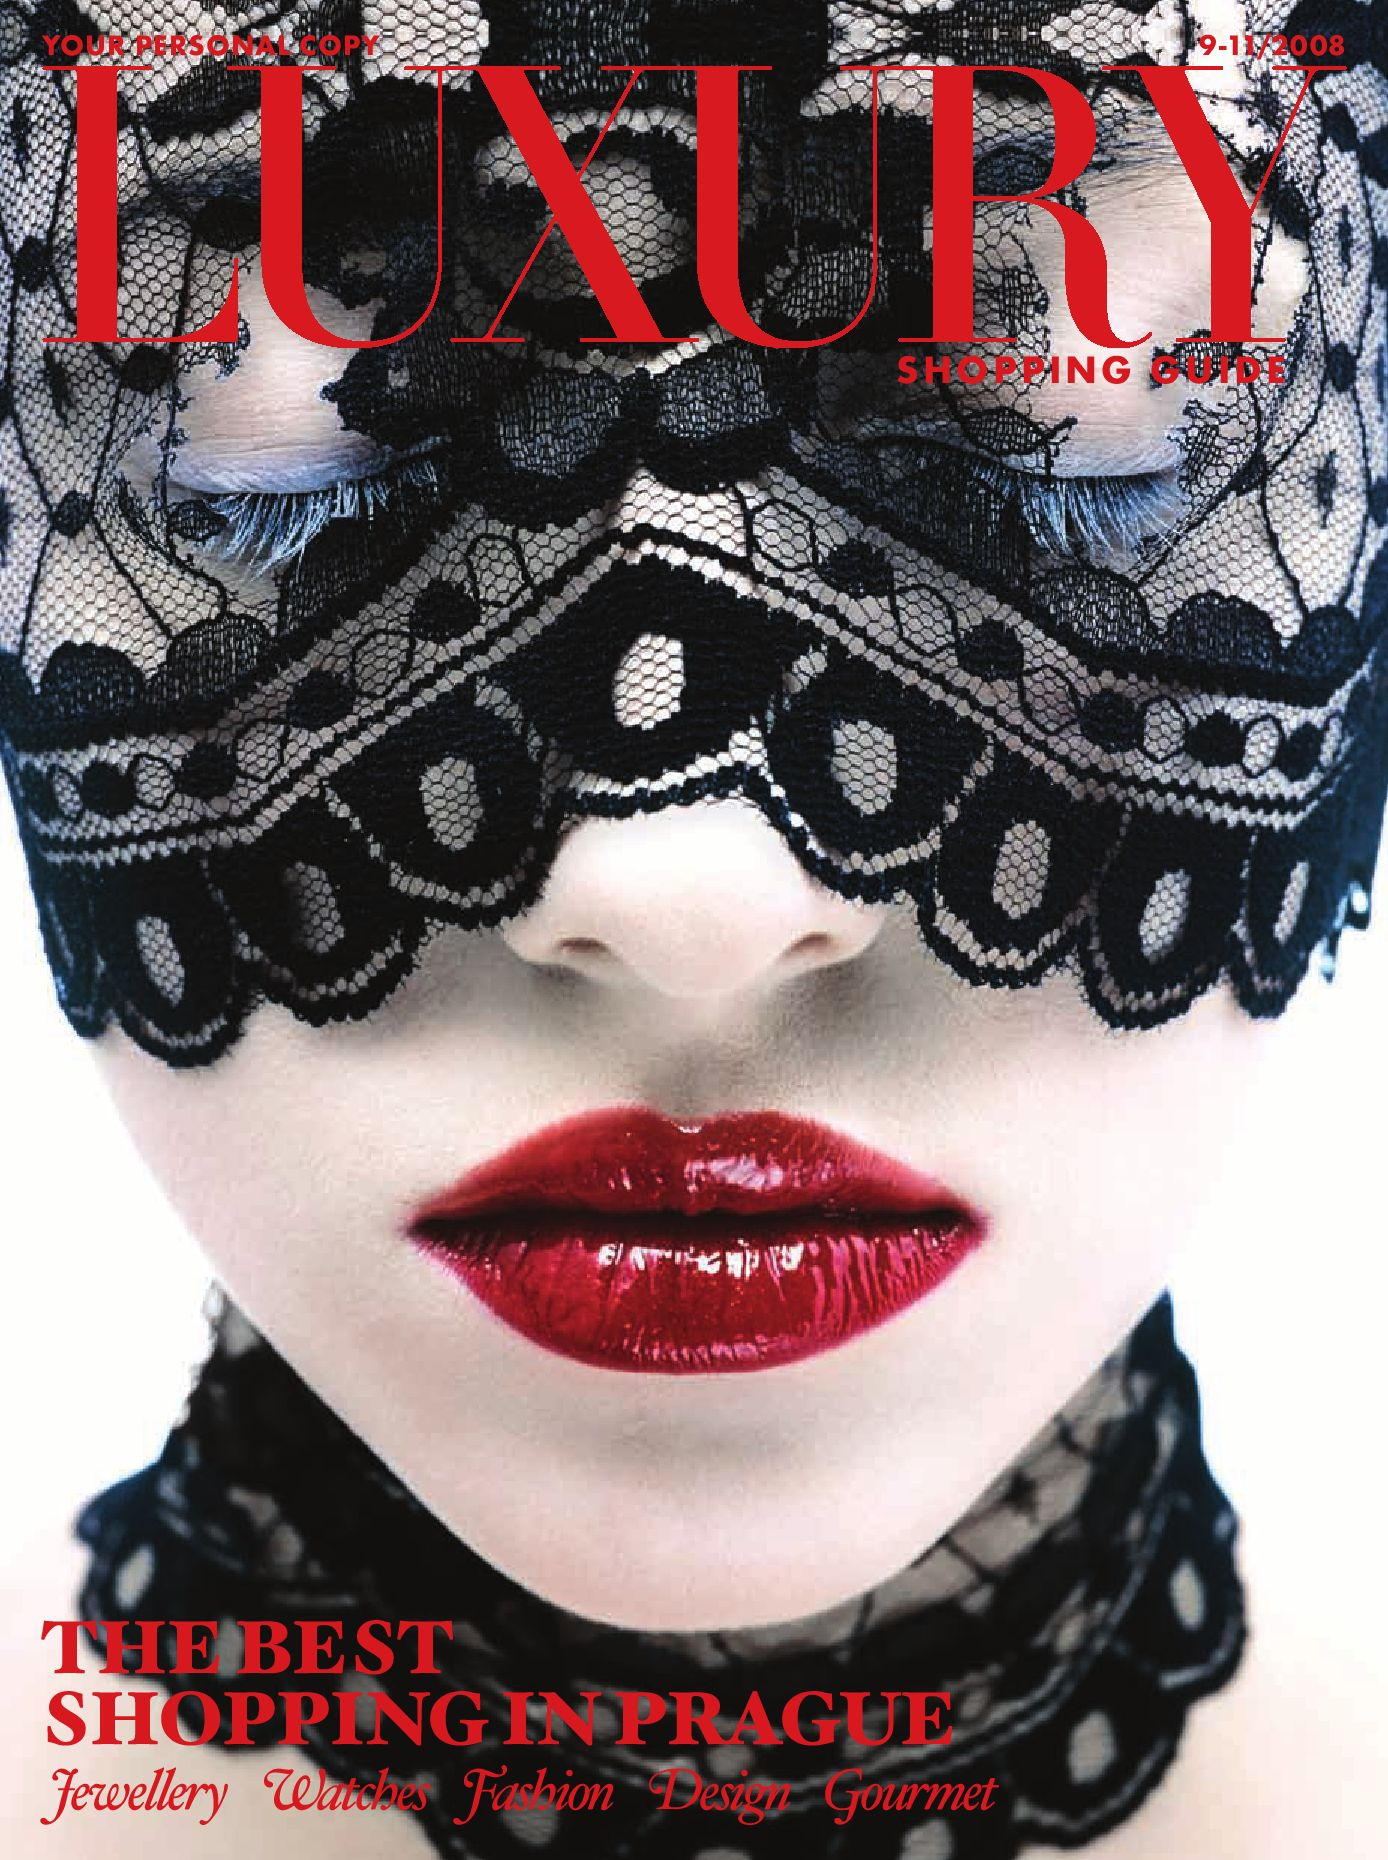 LSG 09 2008 komplet by Luxury Shopping Guide - issuu 3c20162240f